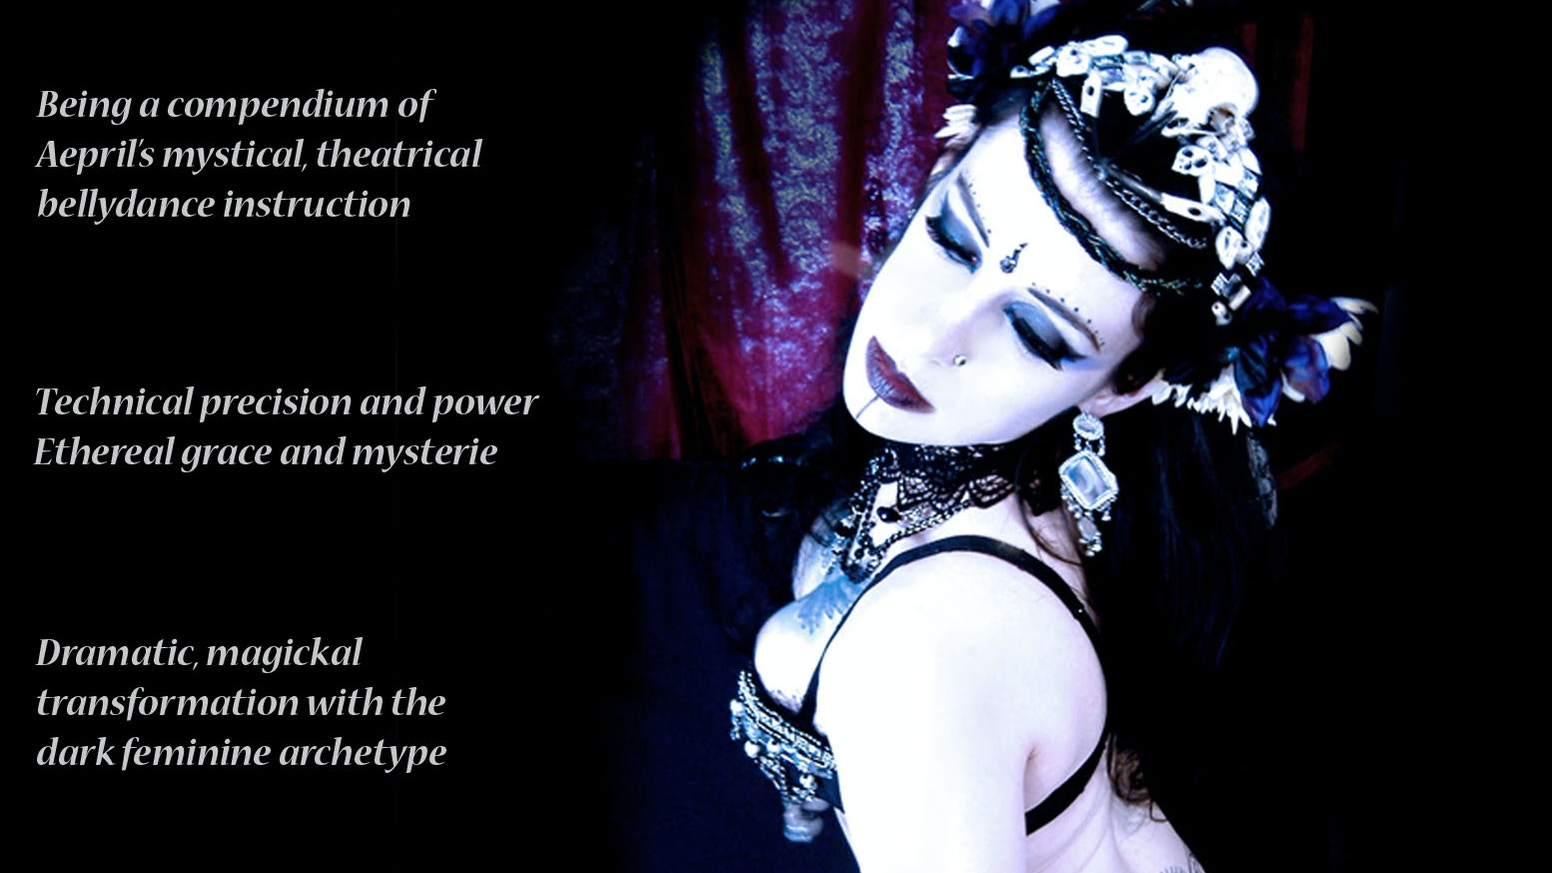 An instructional/performance Bellydance DVD focusing on dance technique,  form, expression, energy